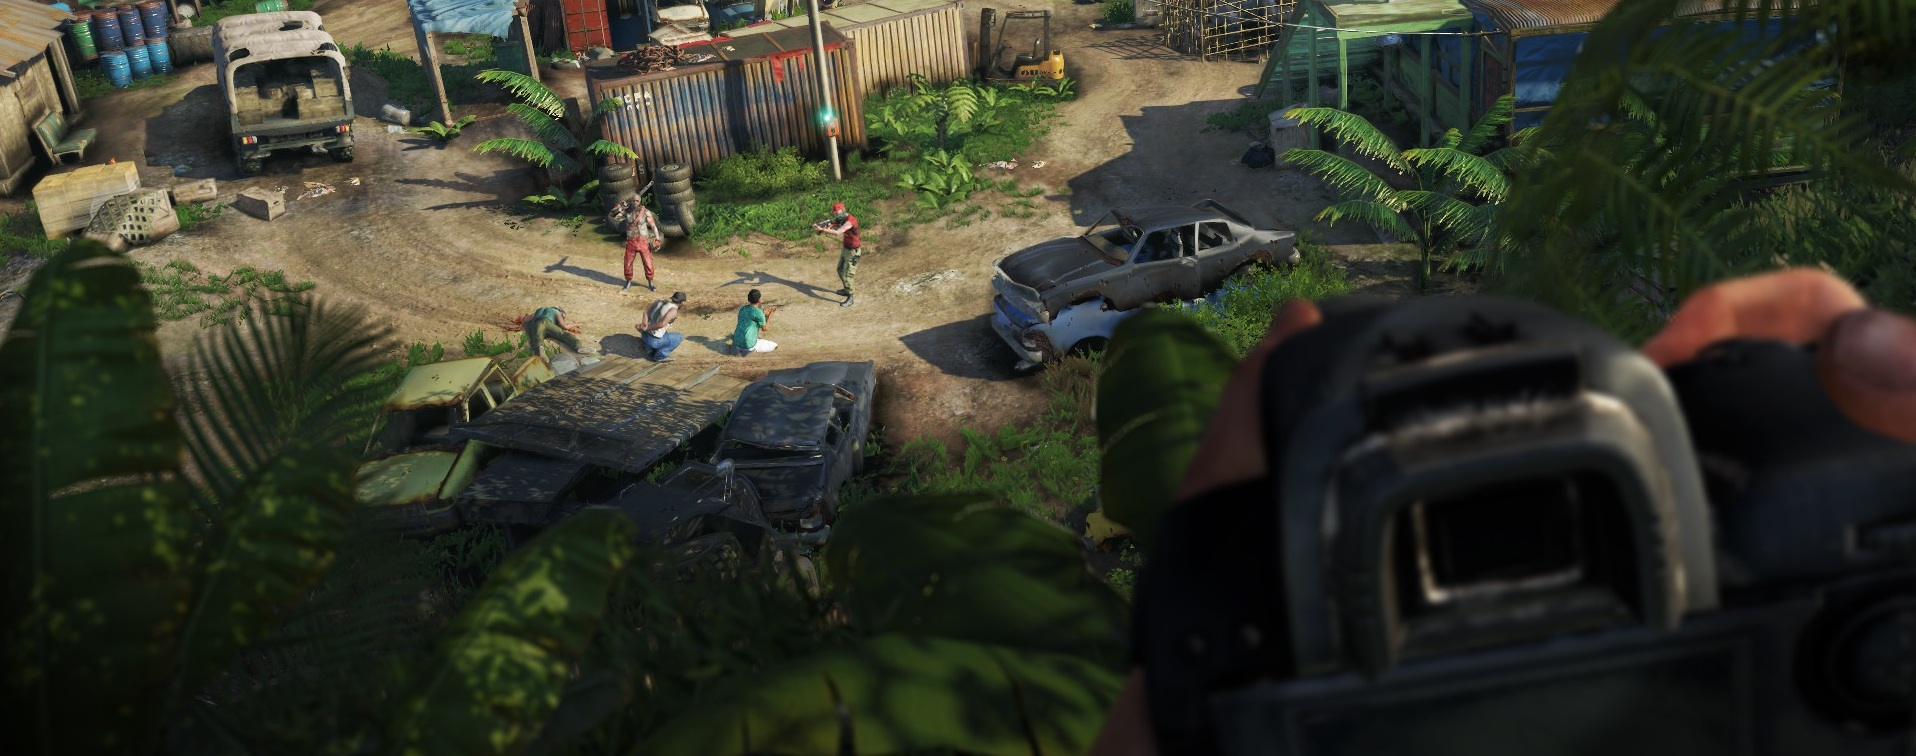 Far Cry 3 Gameplay Video With Commentary Shows Goat Archery